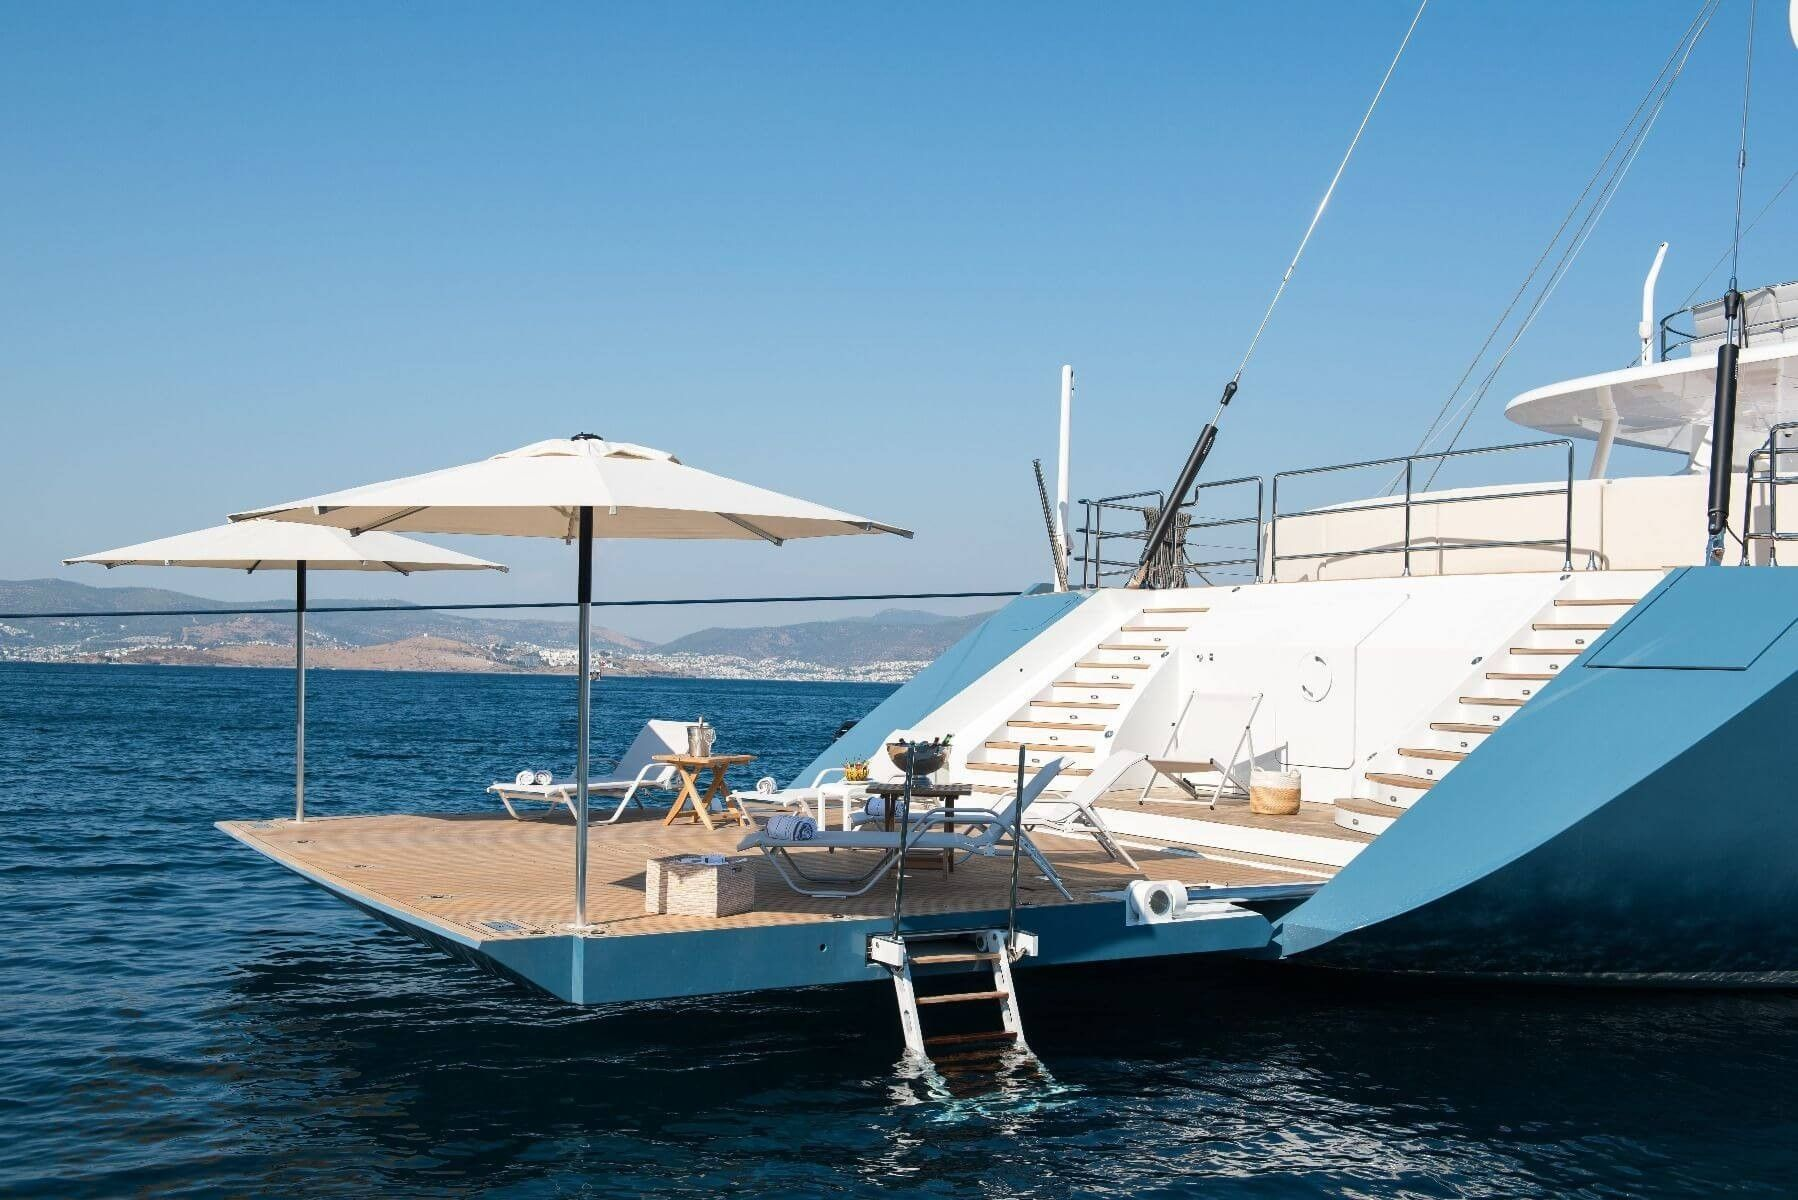 Sailing Yacht All About You Yacht Luxury Sailing Yachts Sailing